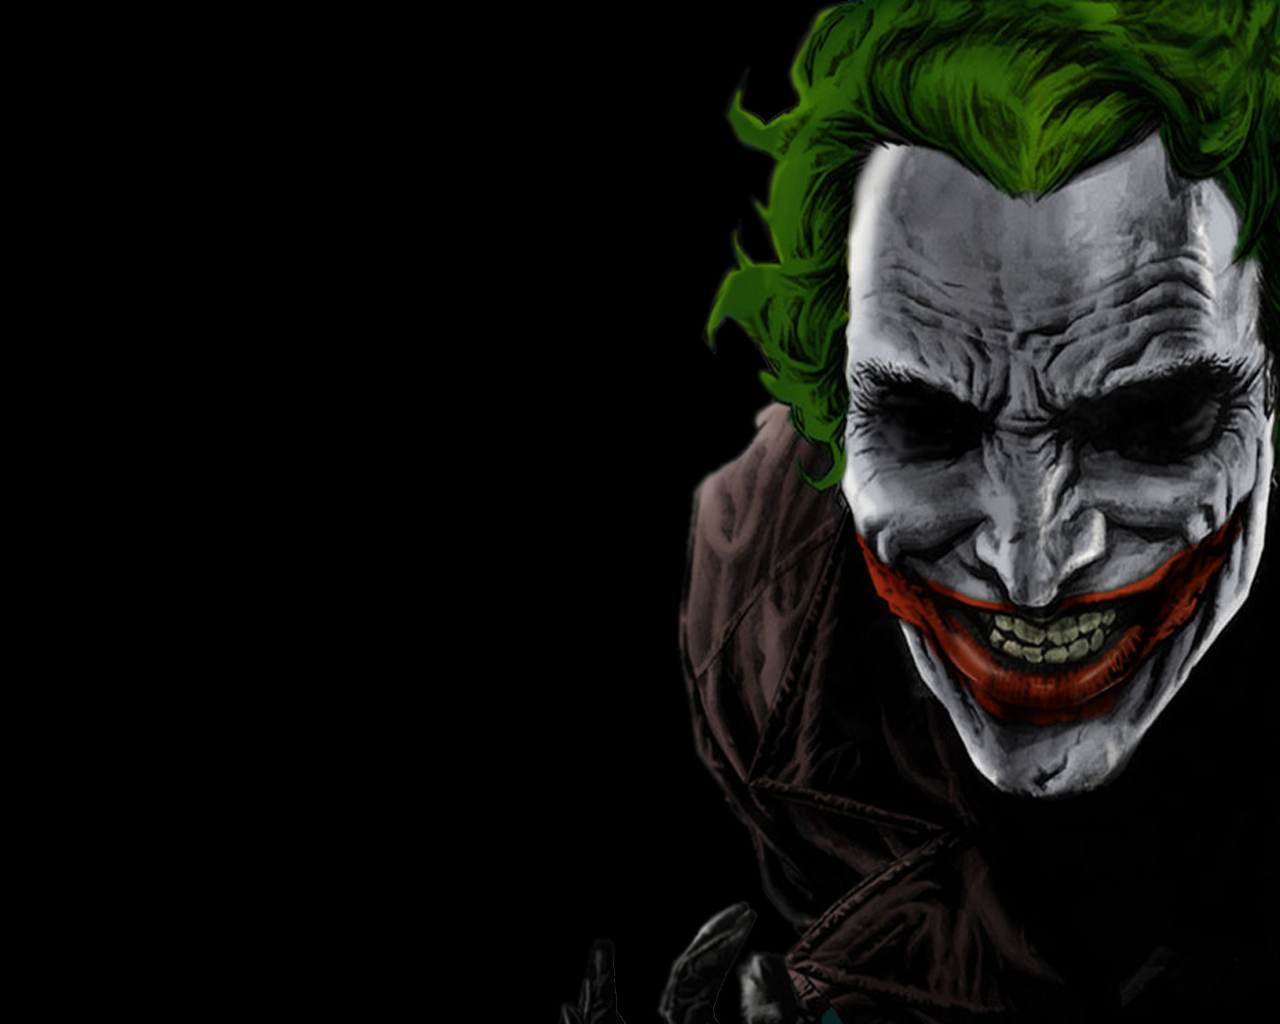 The Joker image...